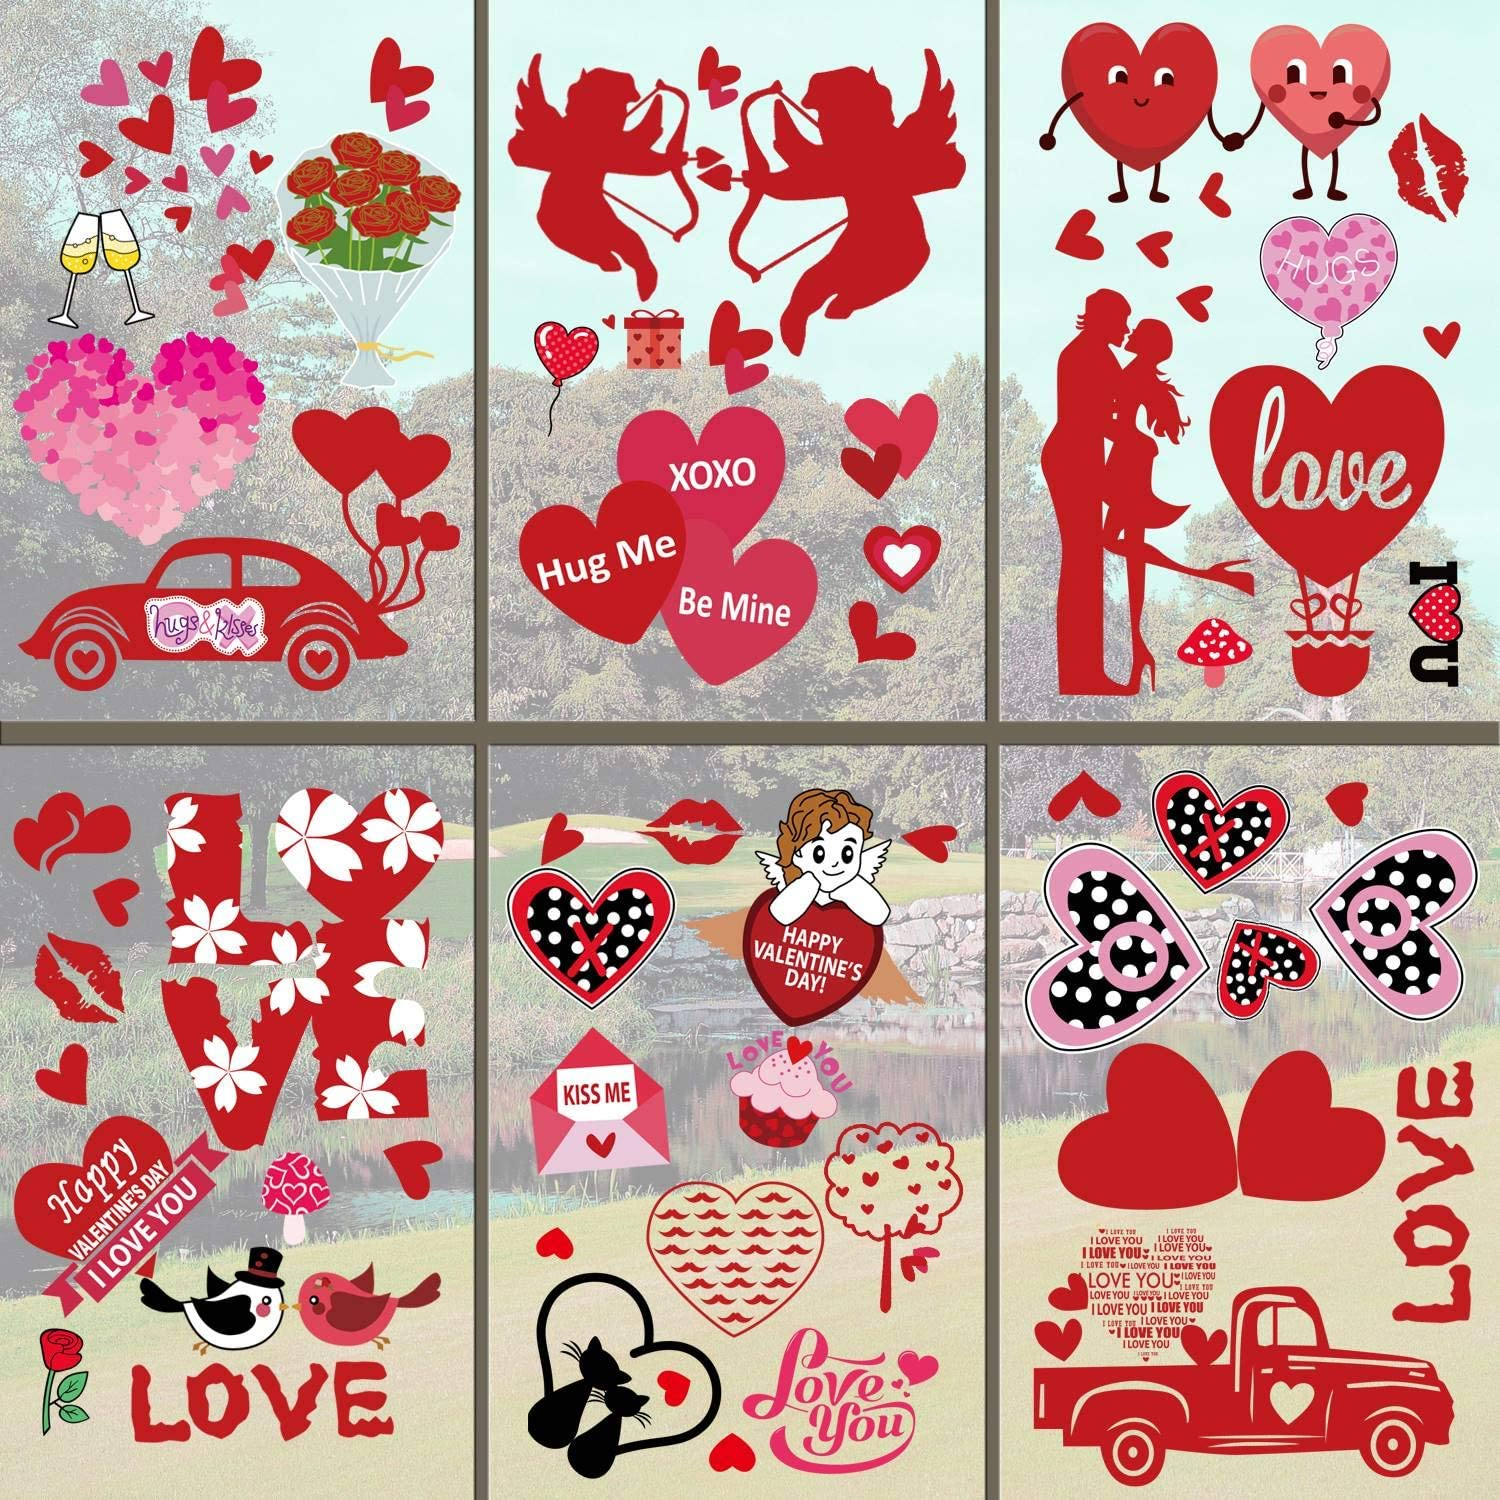 DecorMaster 8 OFFer Sheets Valentine's Day Wi Window Cling Decorations Now on sale